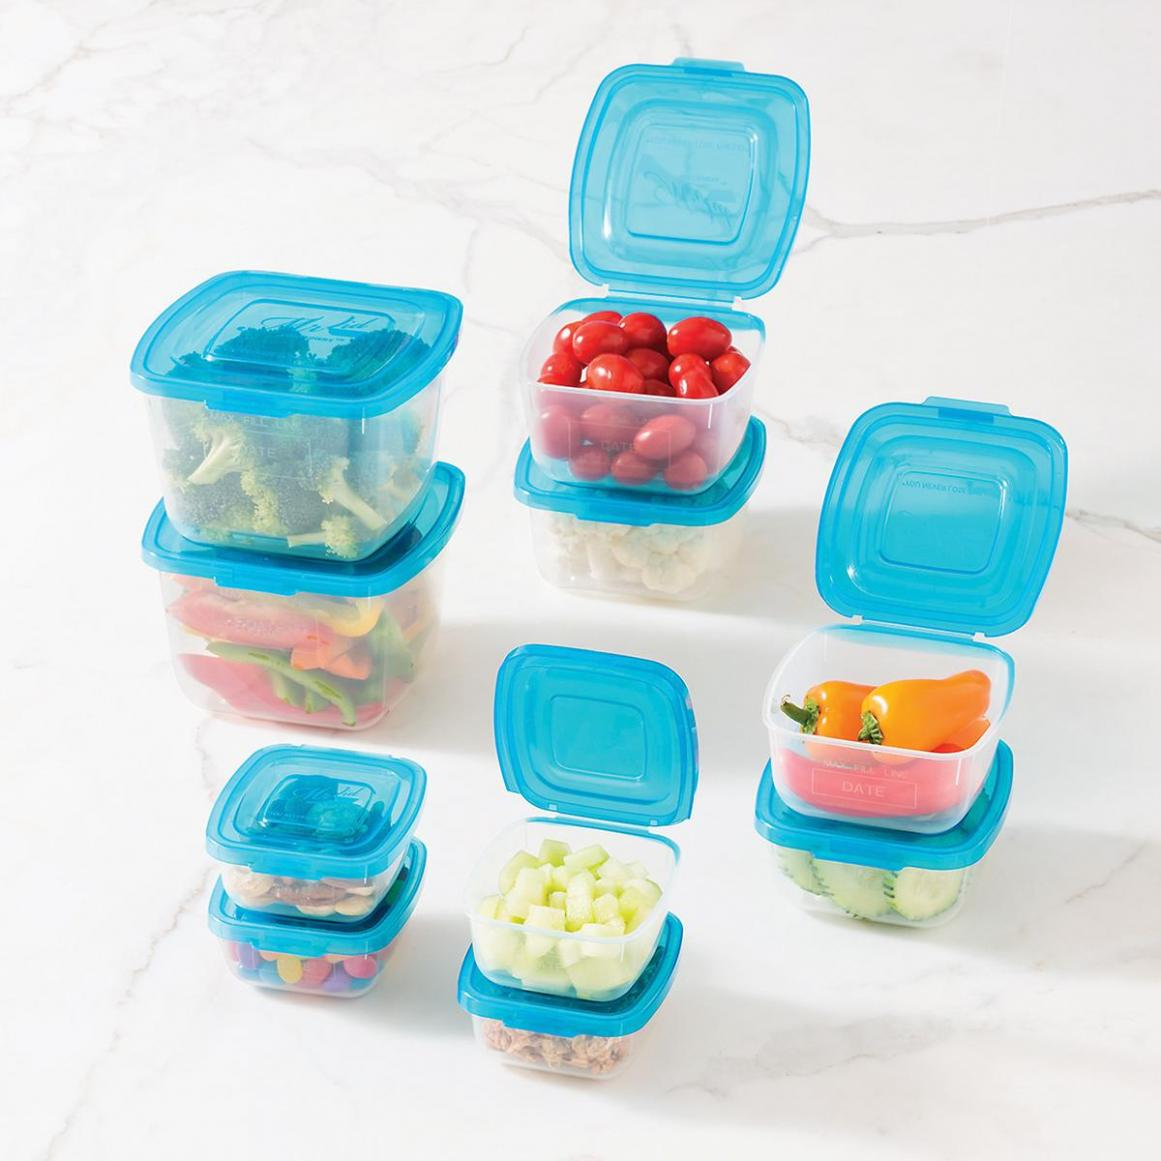 Sussex IM's Mr. Lid Storage Containers